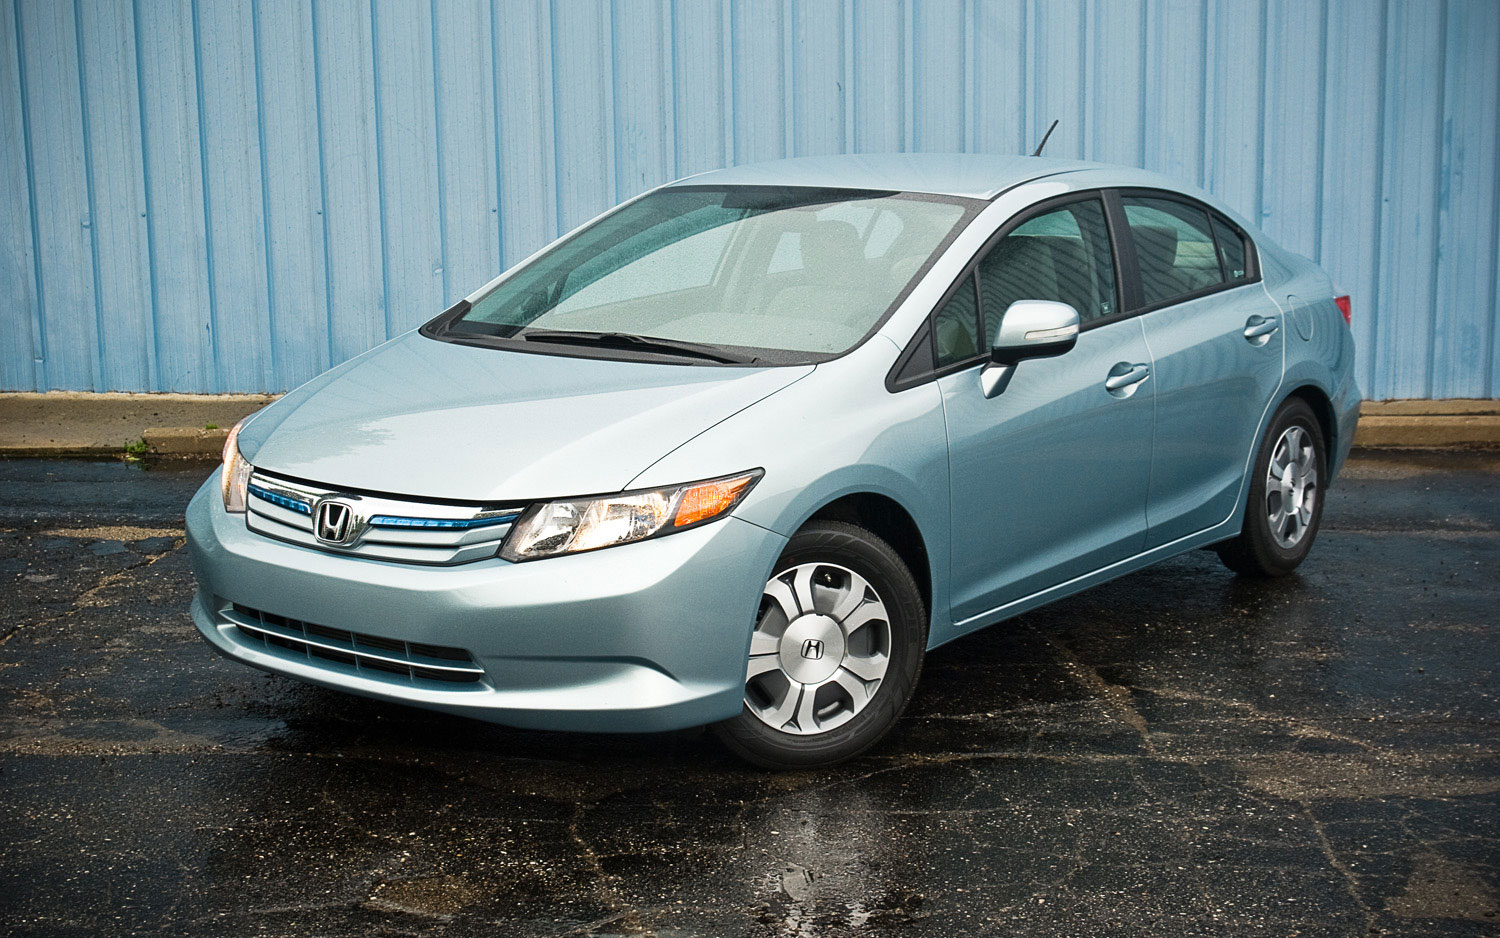 2012 Honda Civic Hybrid Front Left Side View Parked1